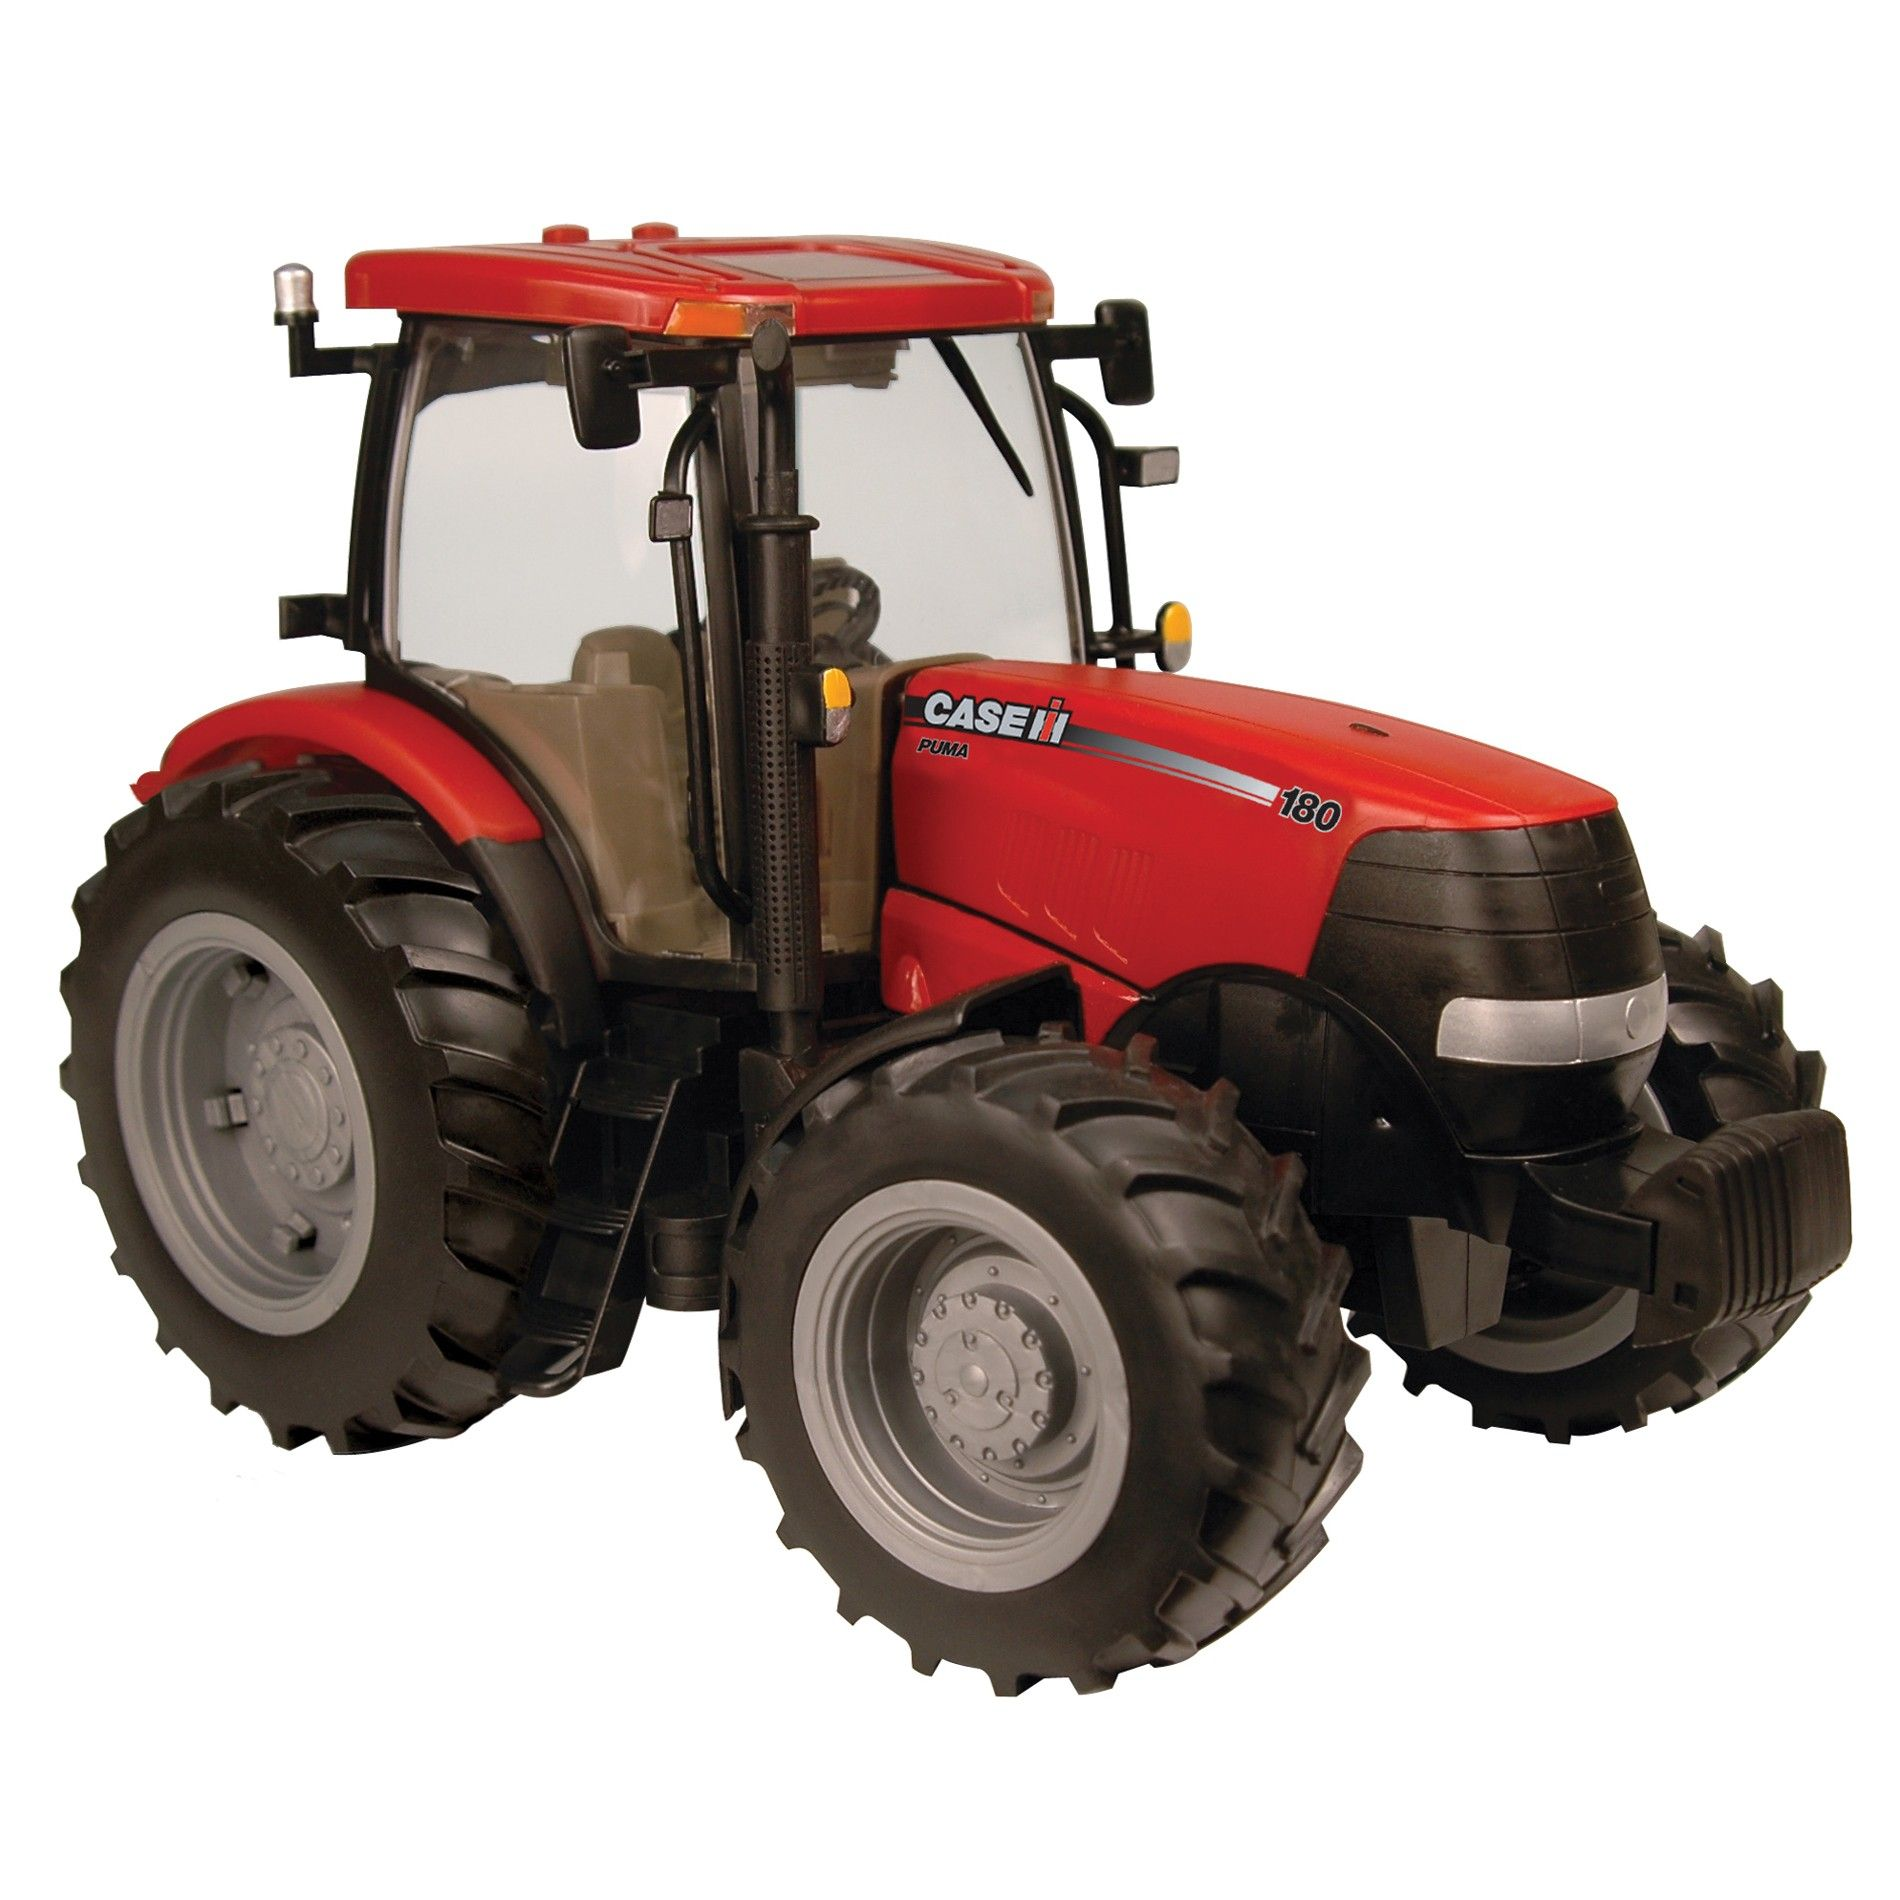 Case Ih Tractor Clipart - Clipart Kid